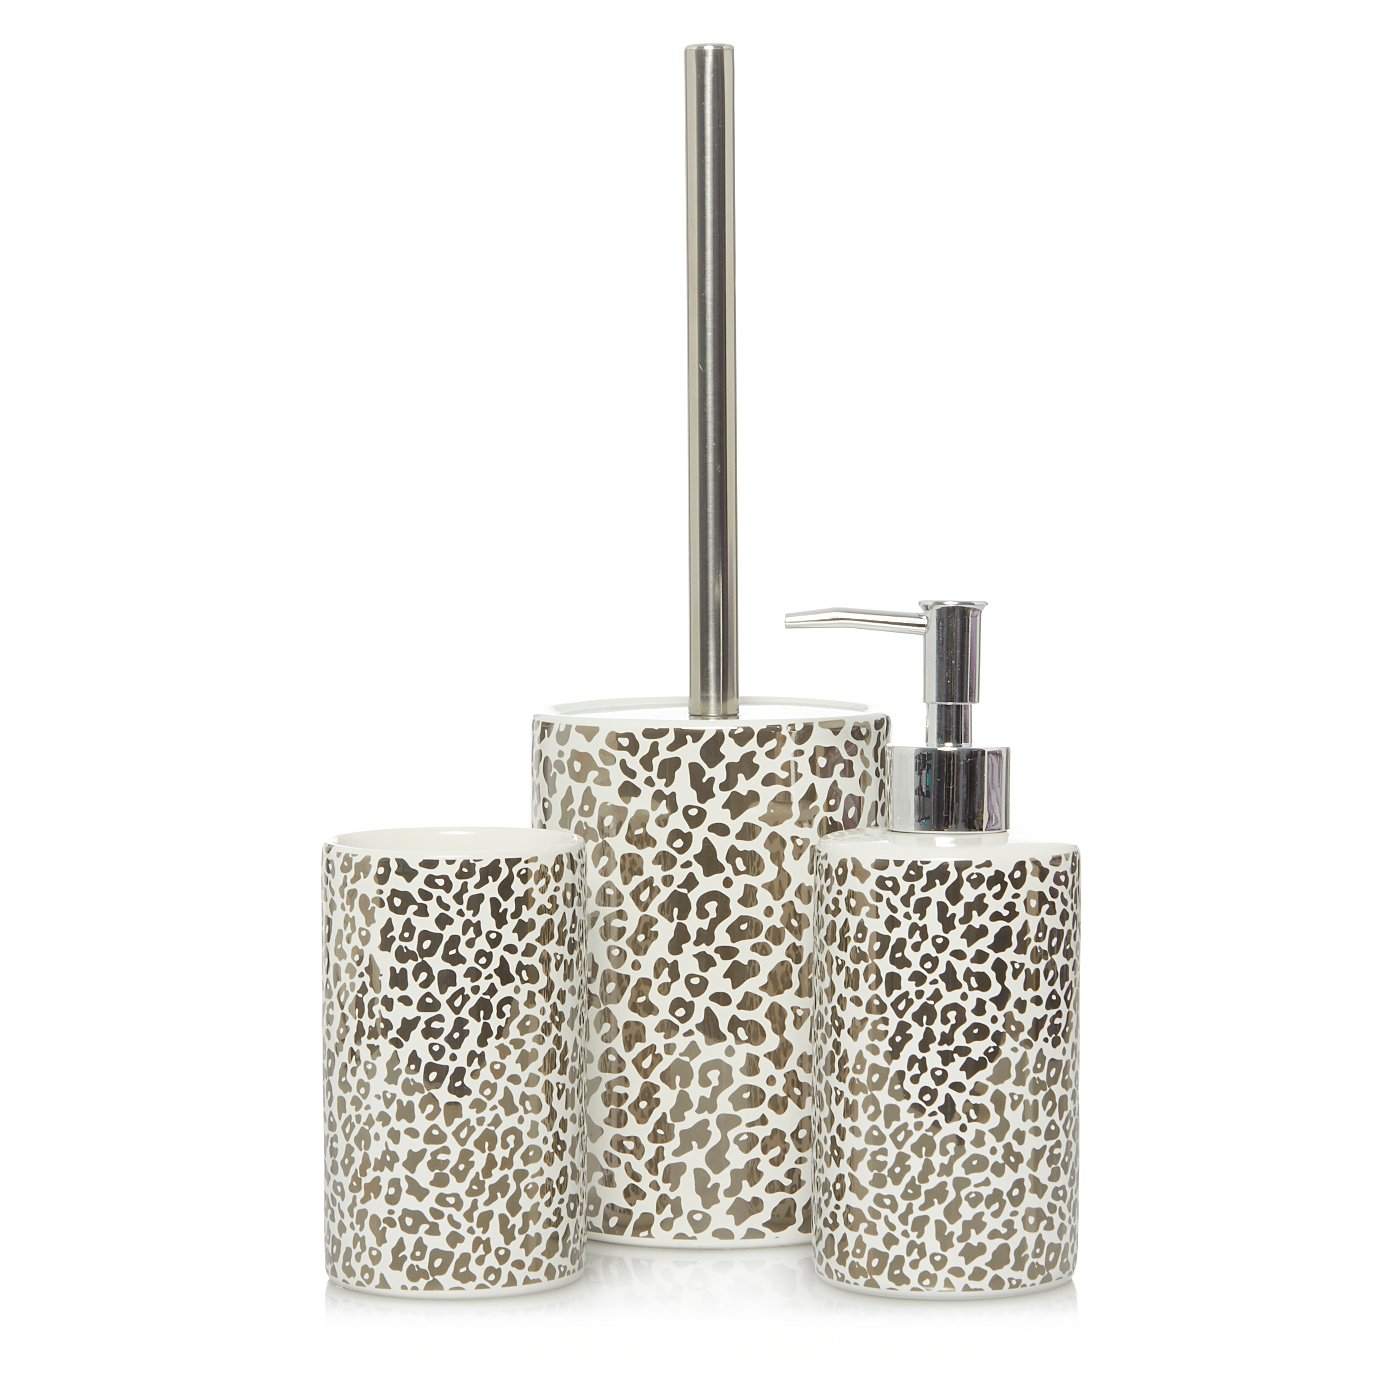 Leopard Print Bath Accessories Range | Bathroom Accessories | George ...